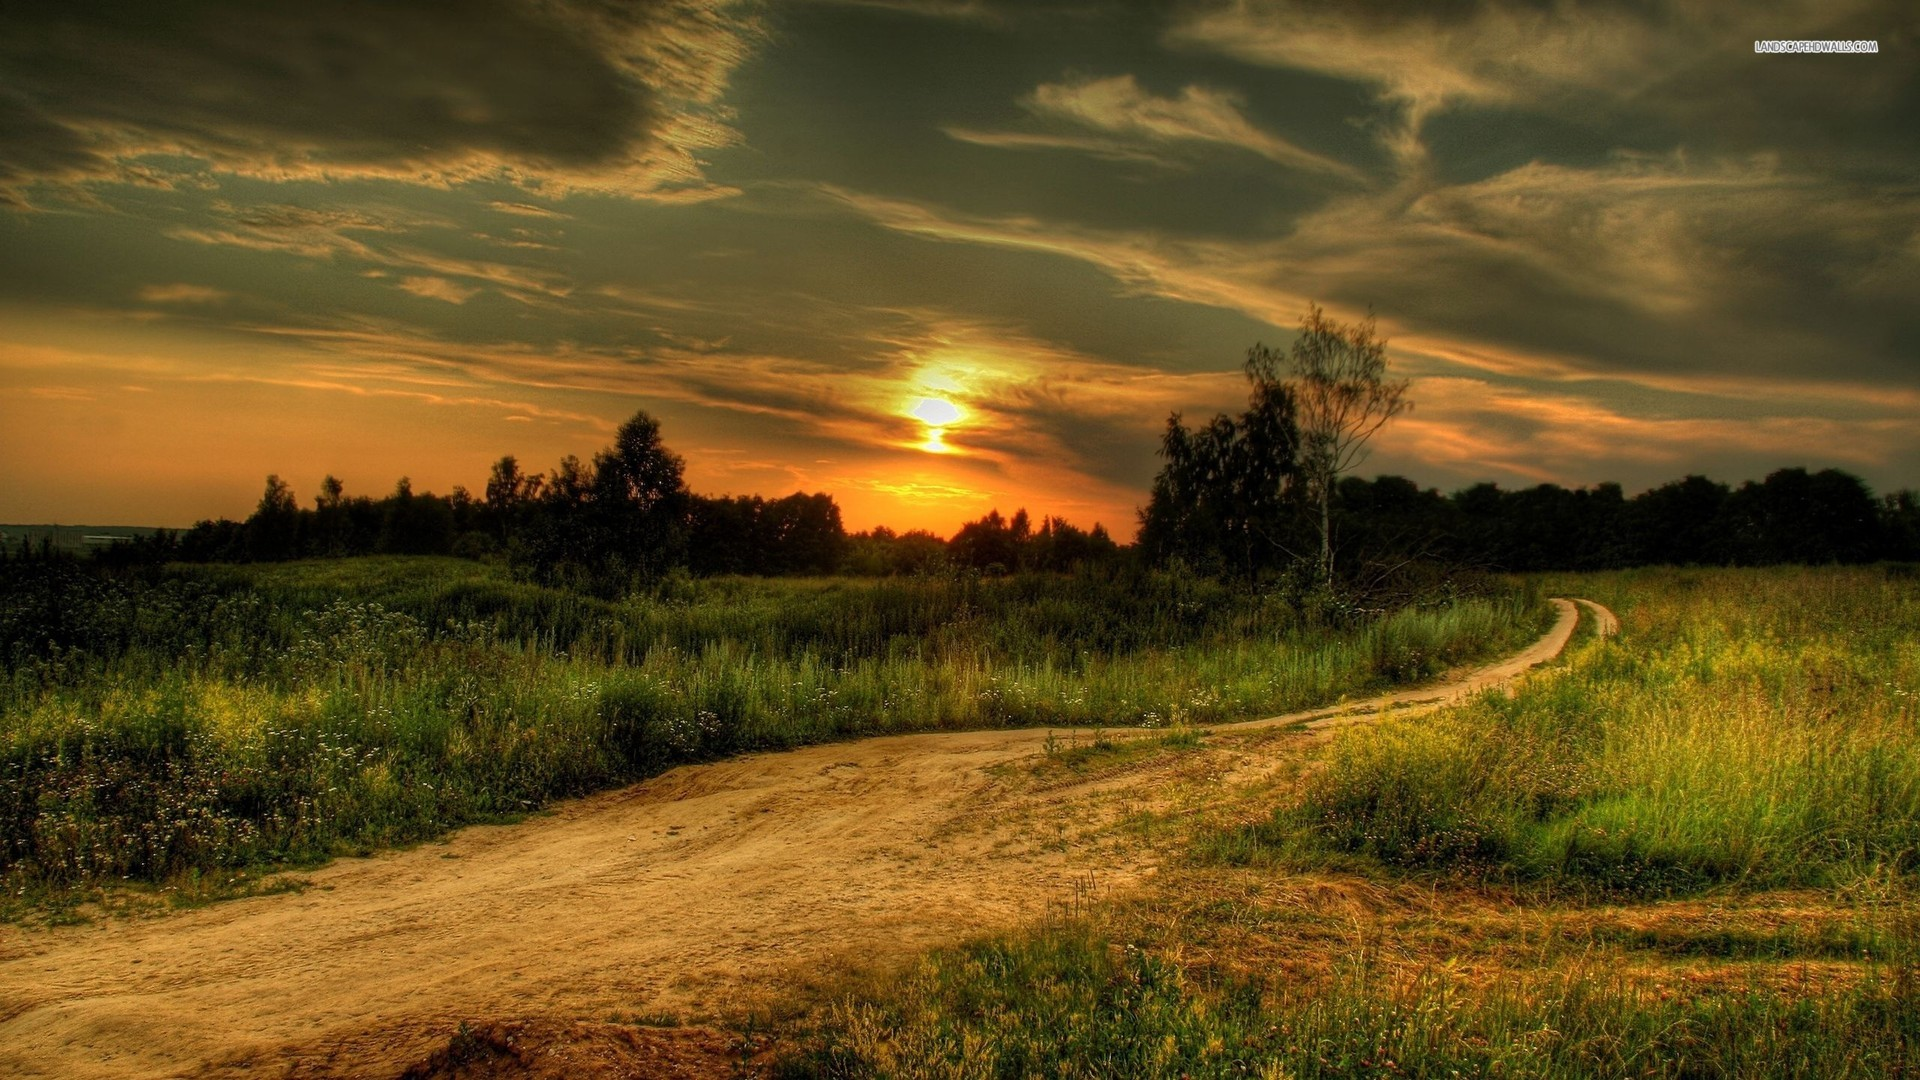 ... Country Road at Sunset wallpaper 1920x1080 1080p ...